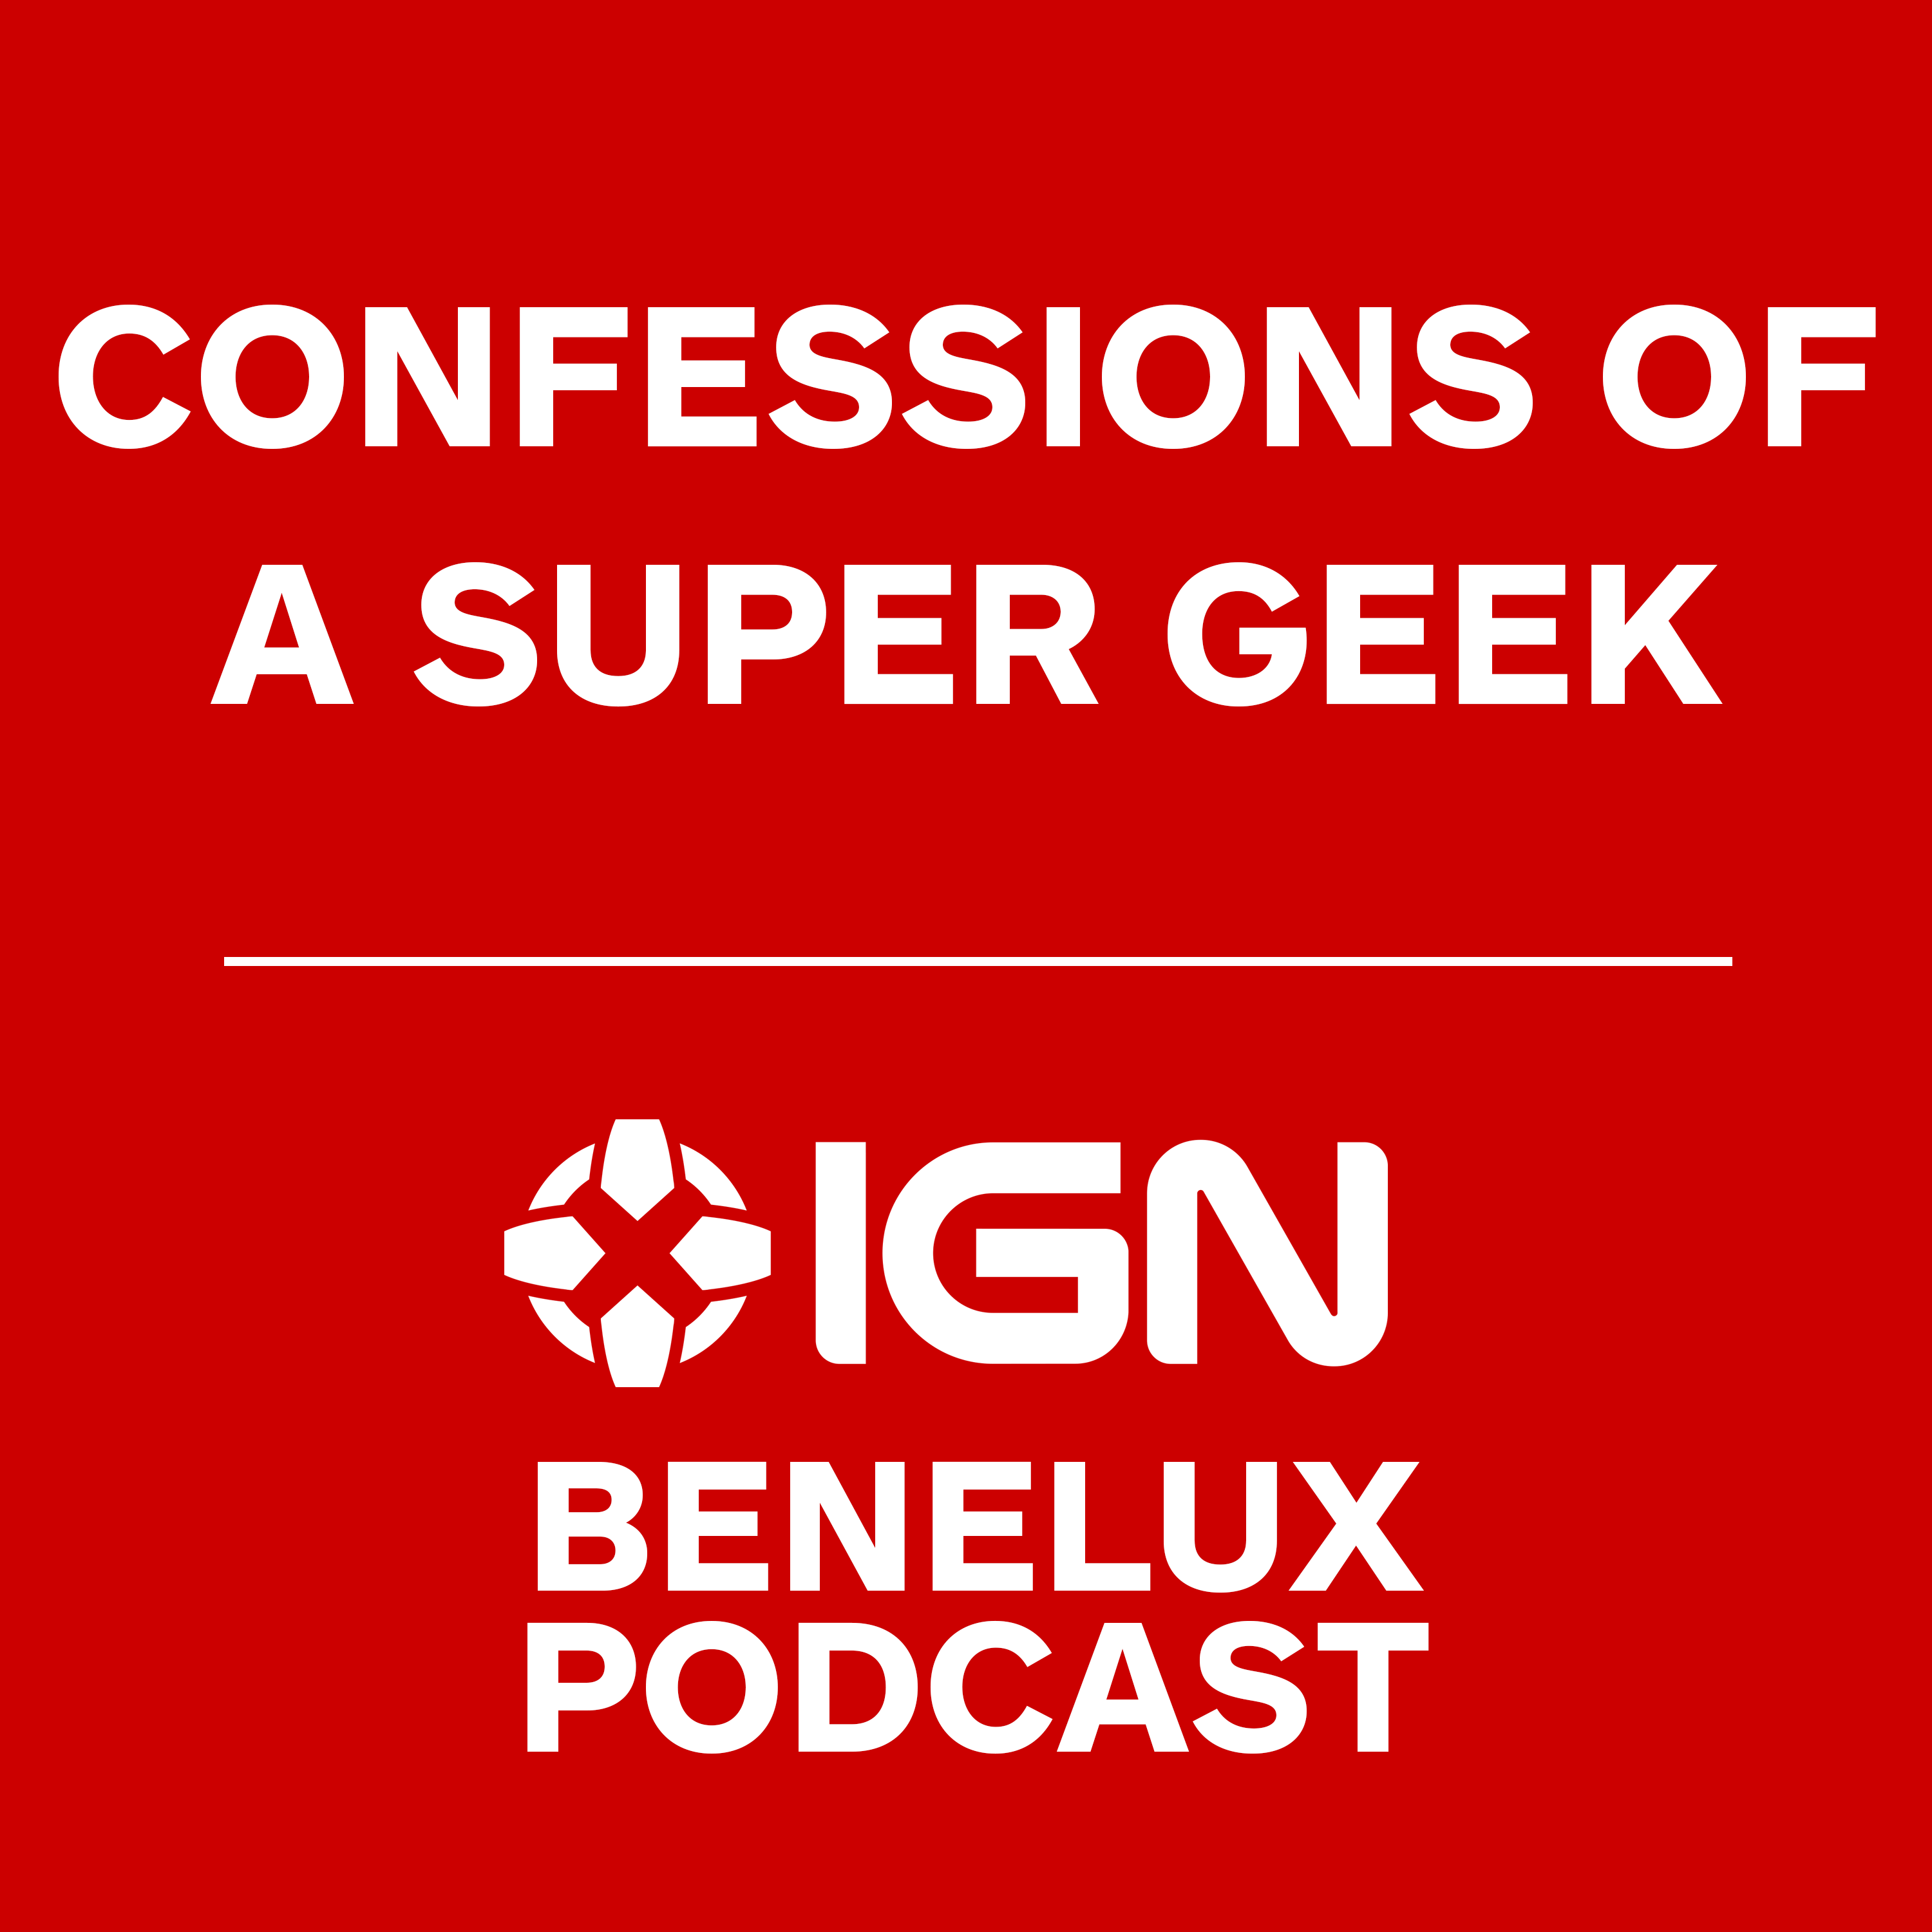 IGN Benelux Podcast show image